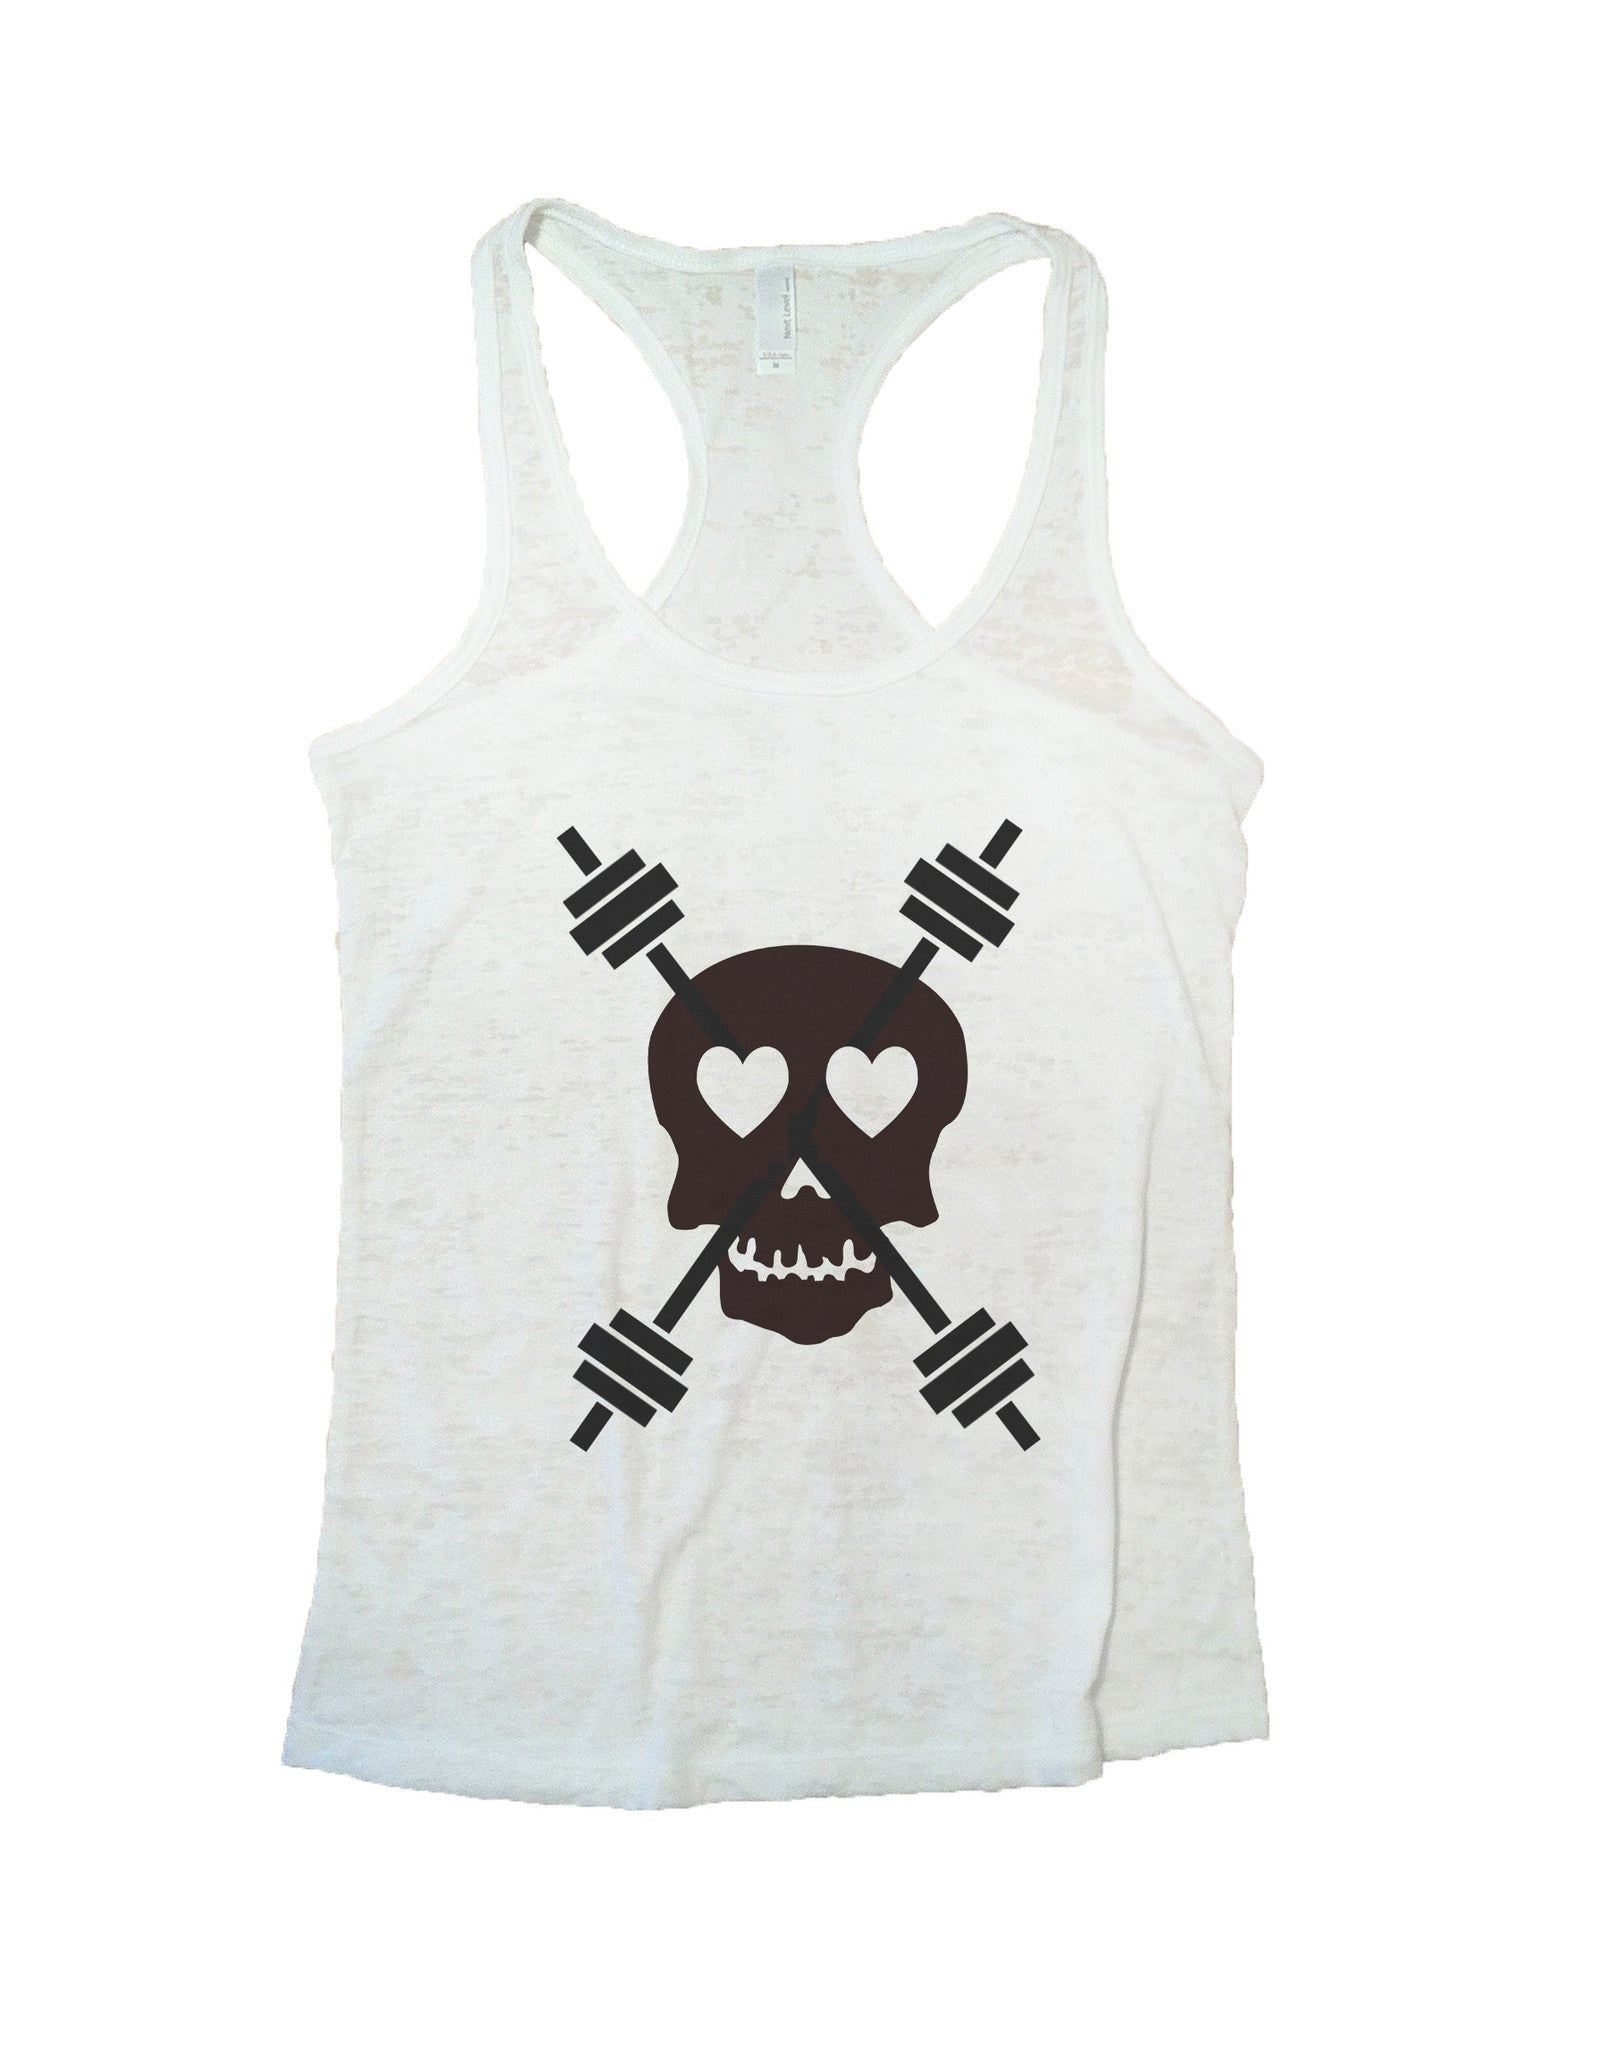 Skulls Womens Burnout Tank Top By BurnoutTankTops.com - 653 - Funny Shirts Tank Tops Burnouts and Triblends  - 5